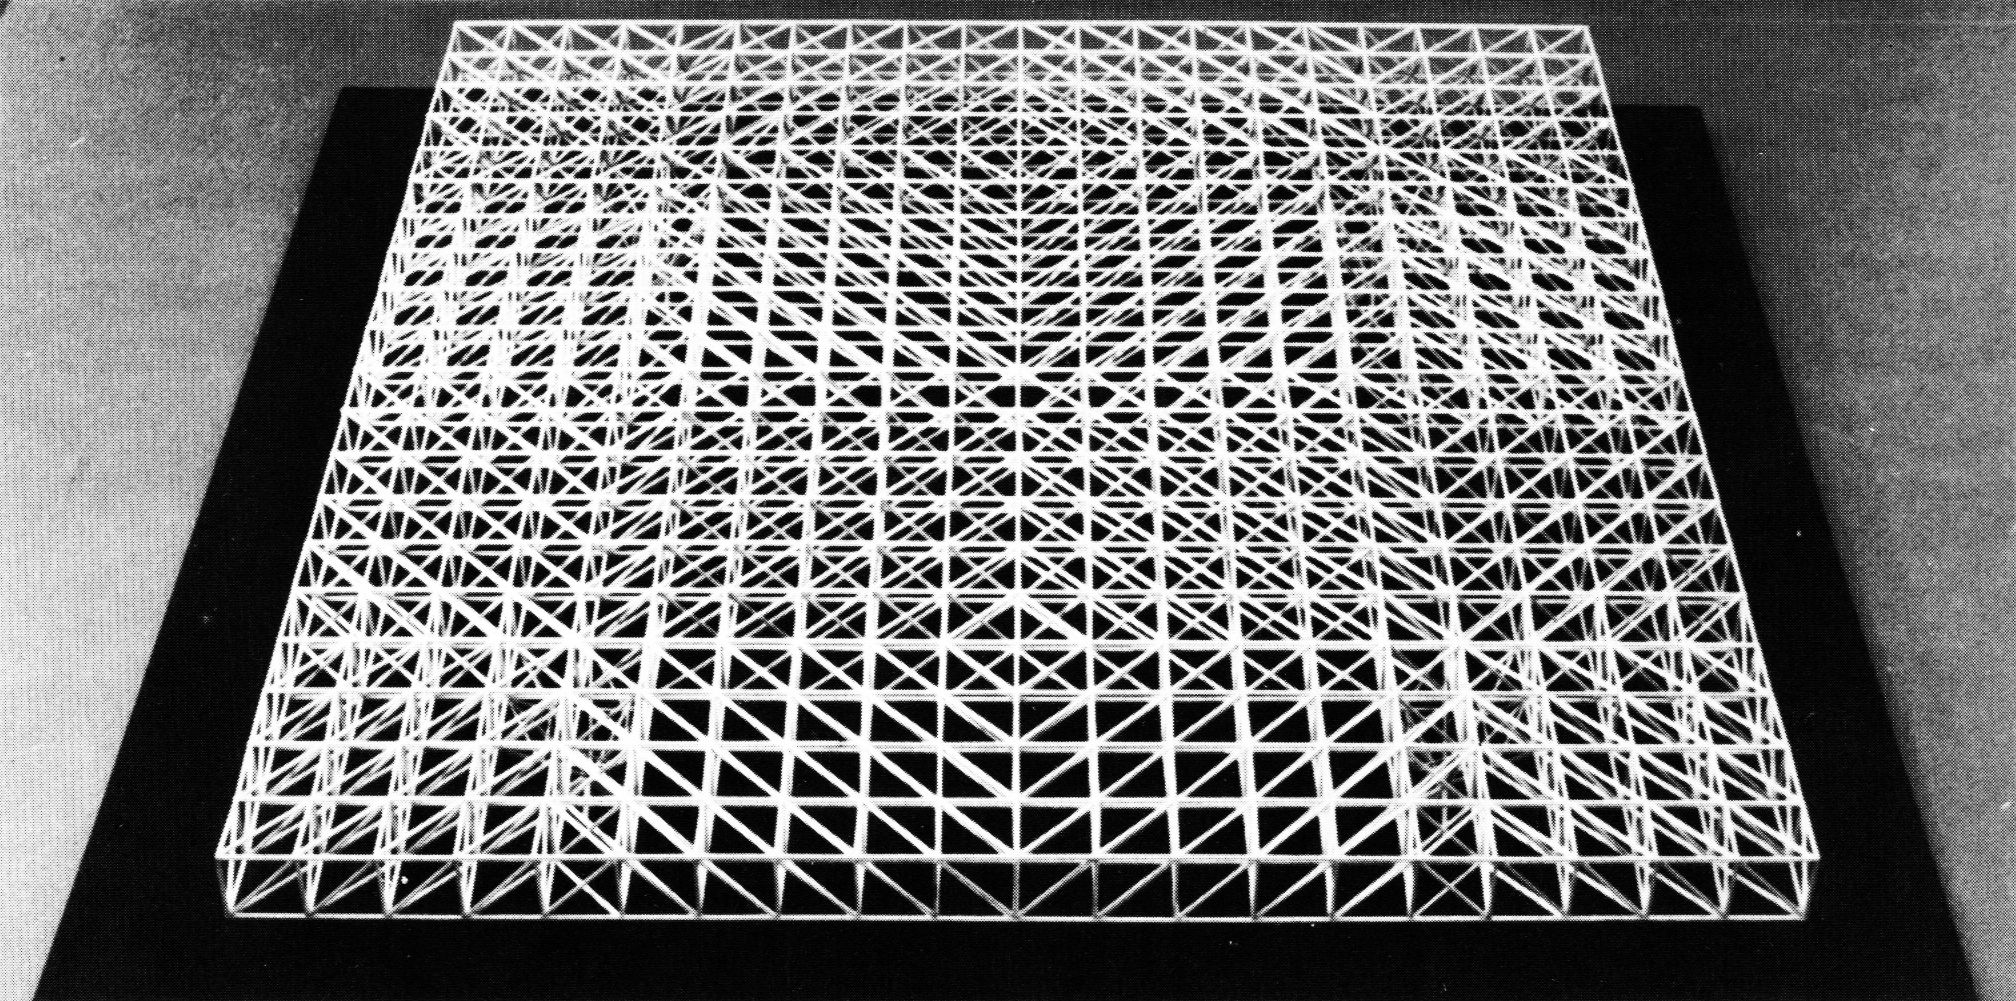 Usc Students Under Konrad Wachsmann 1965 A Long Span Structure With Minimum Support Having Maximum Us Space Frame Architecture Model Abstract Geometric Art